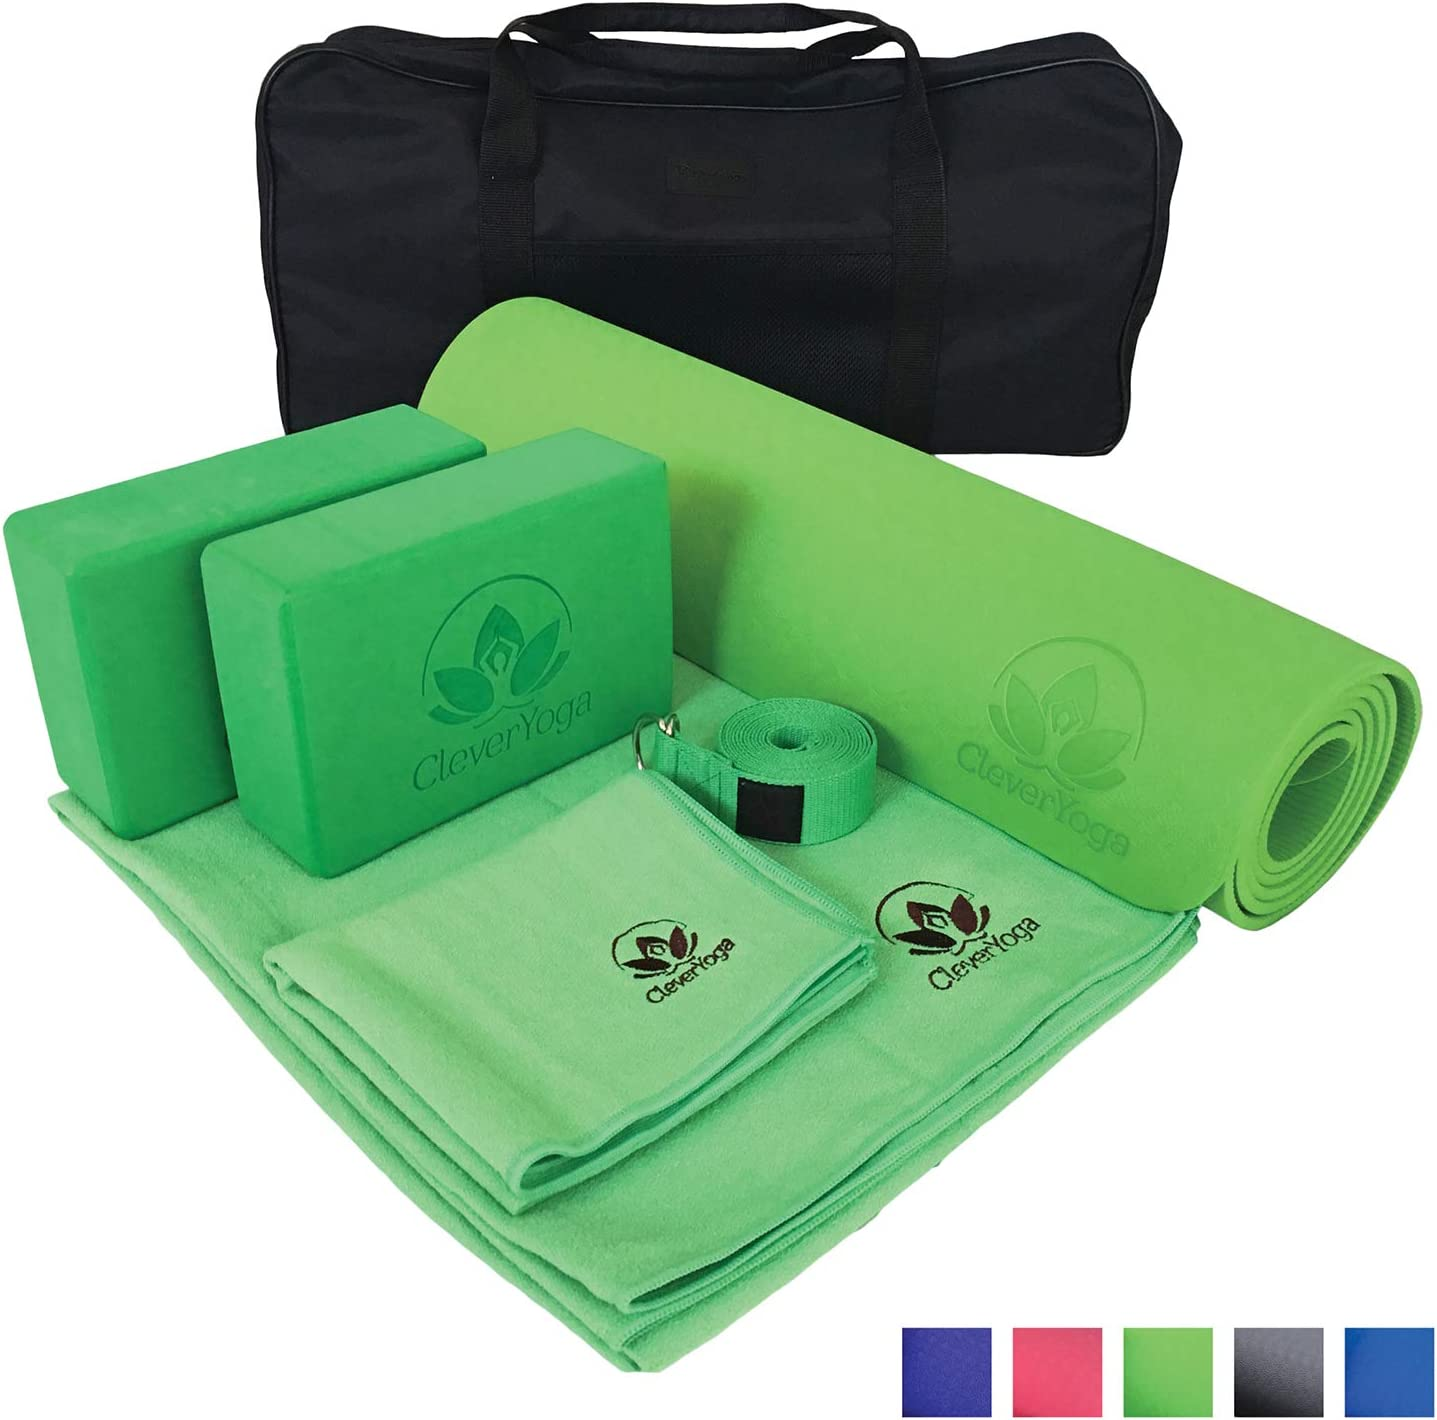 With Carrying Case 8 Piece Yoga Kit Yoga Ball And Pump JanSemeradProducts